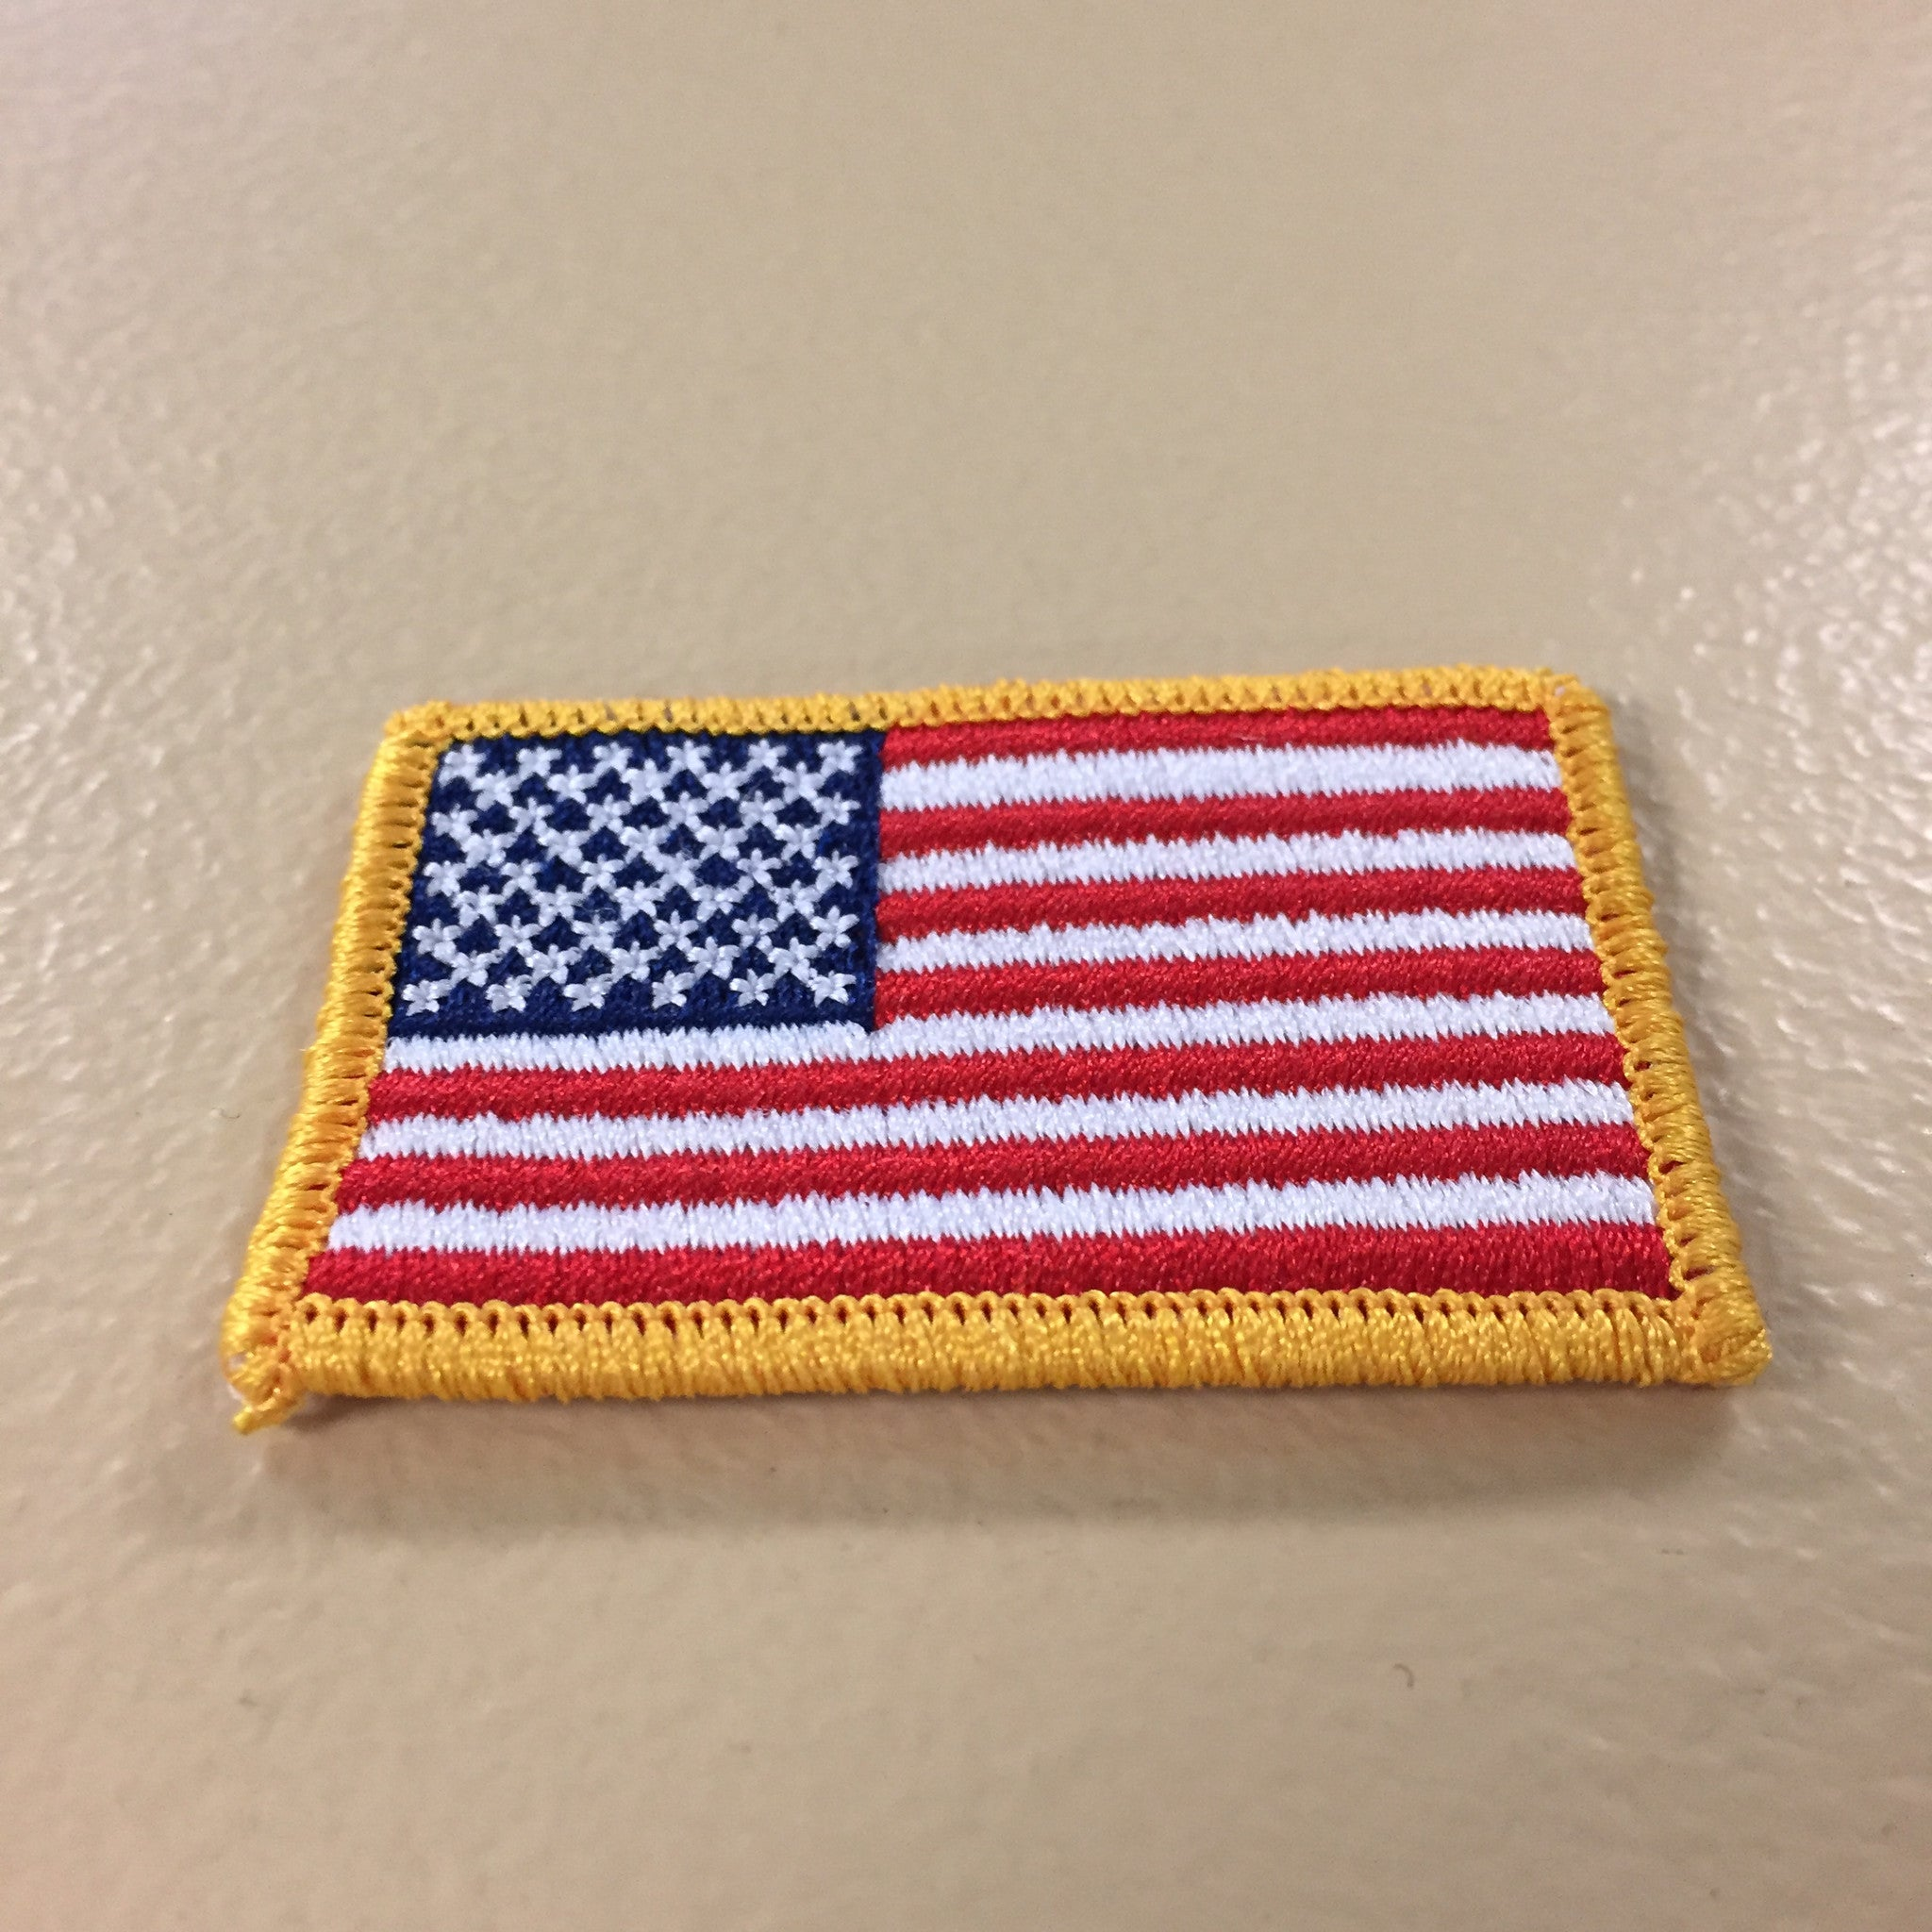 "1 3//8/"" x 2 1//4/"" US United States American Flag Embroidery Patch"